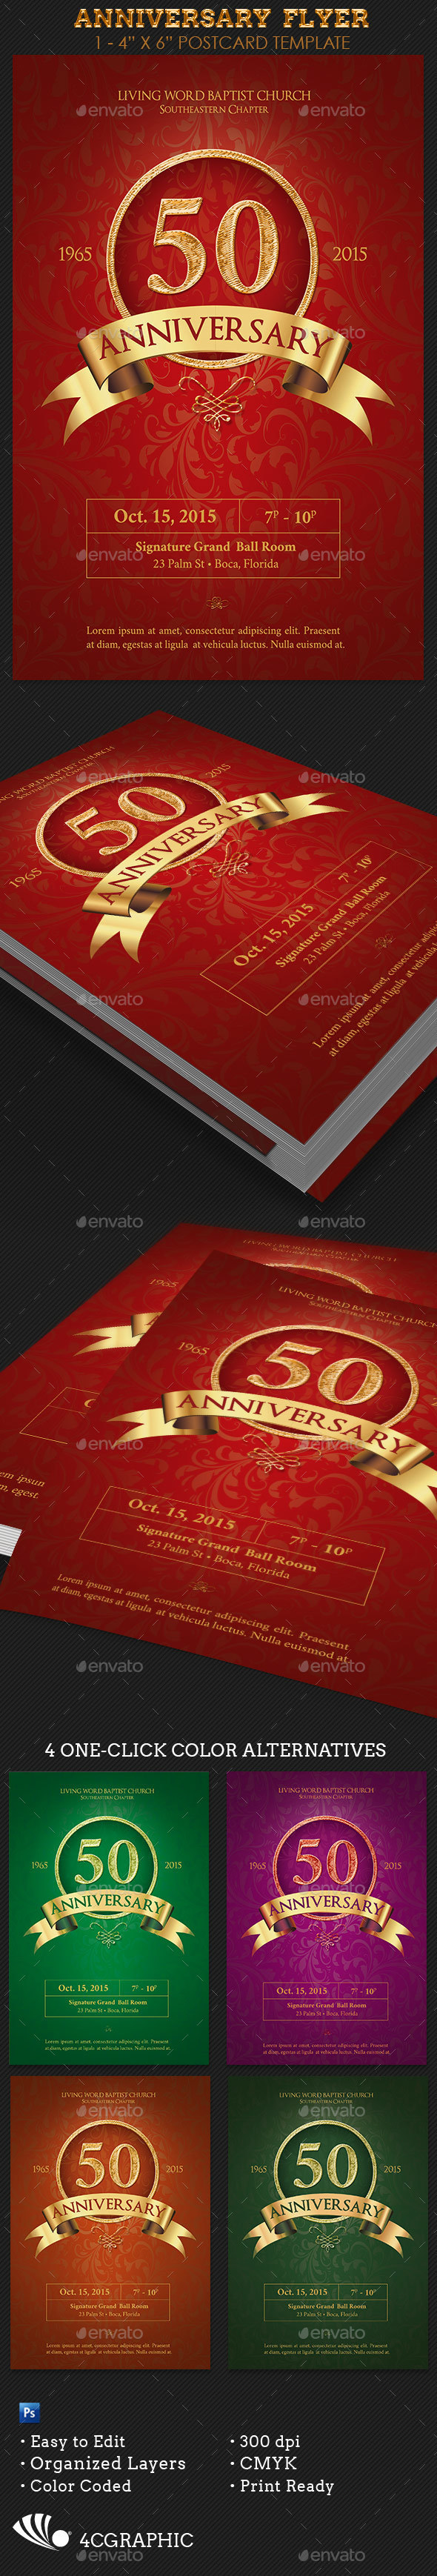 Church Anniversary Flyer Template - Invitations Cards & Invites